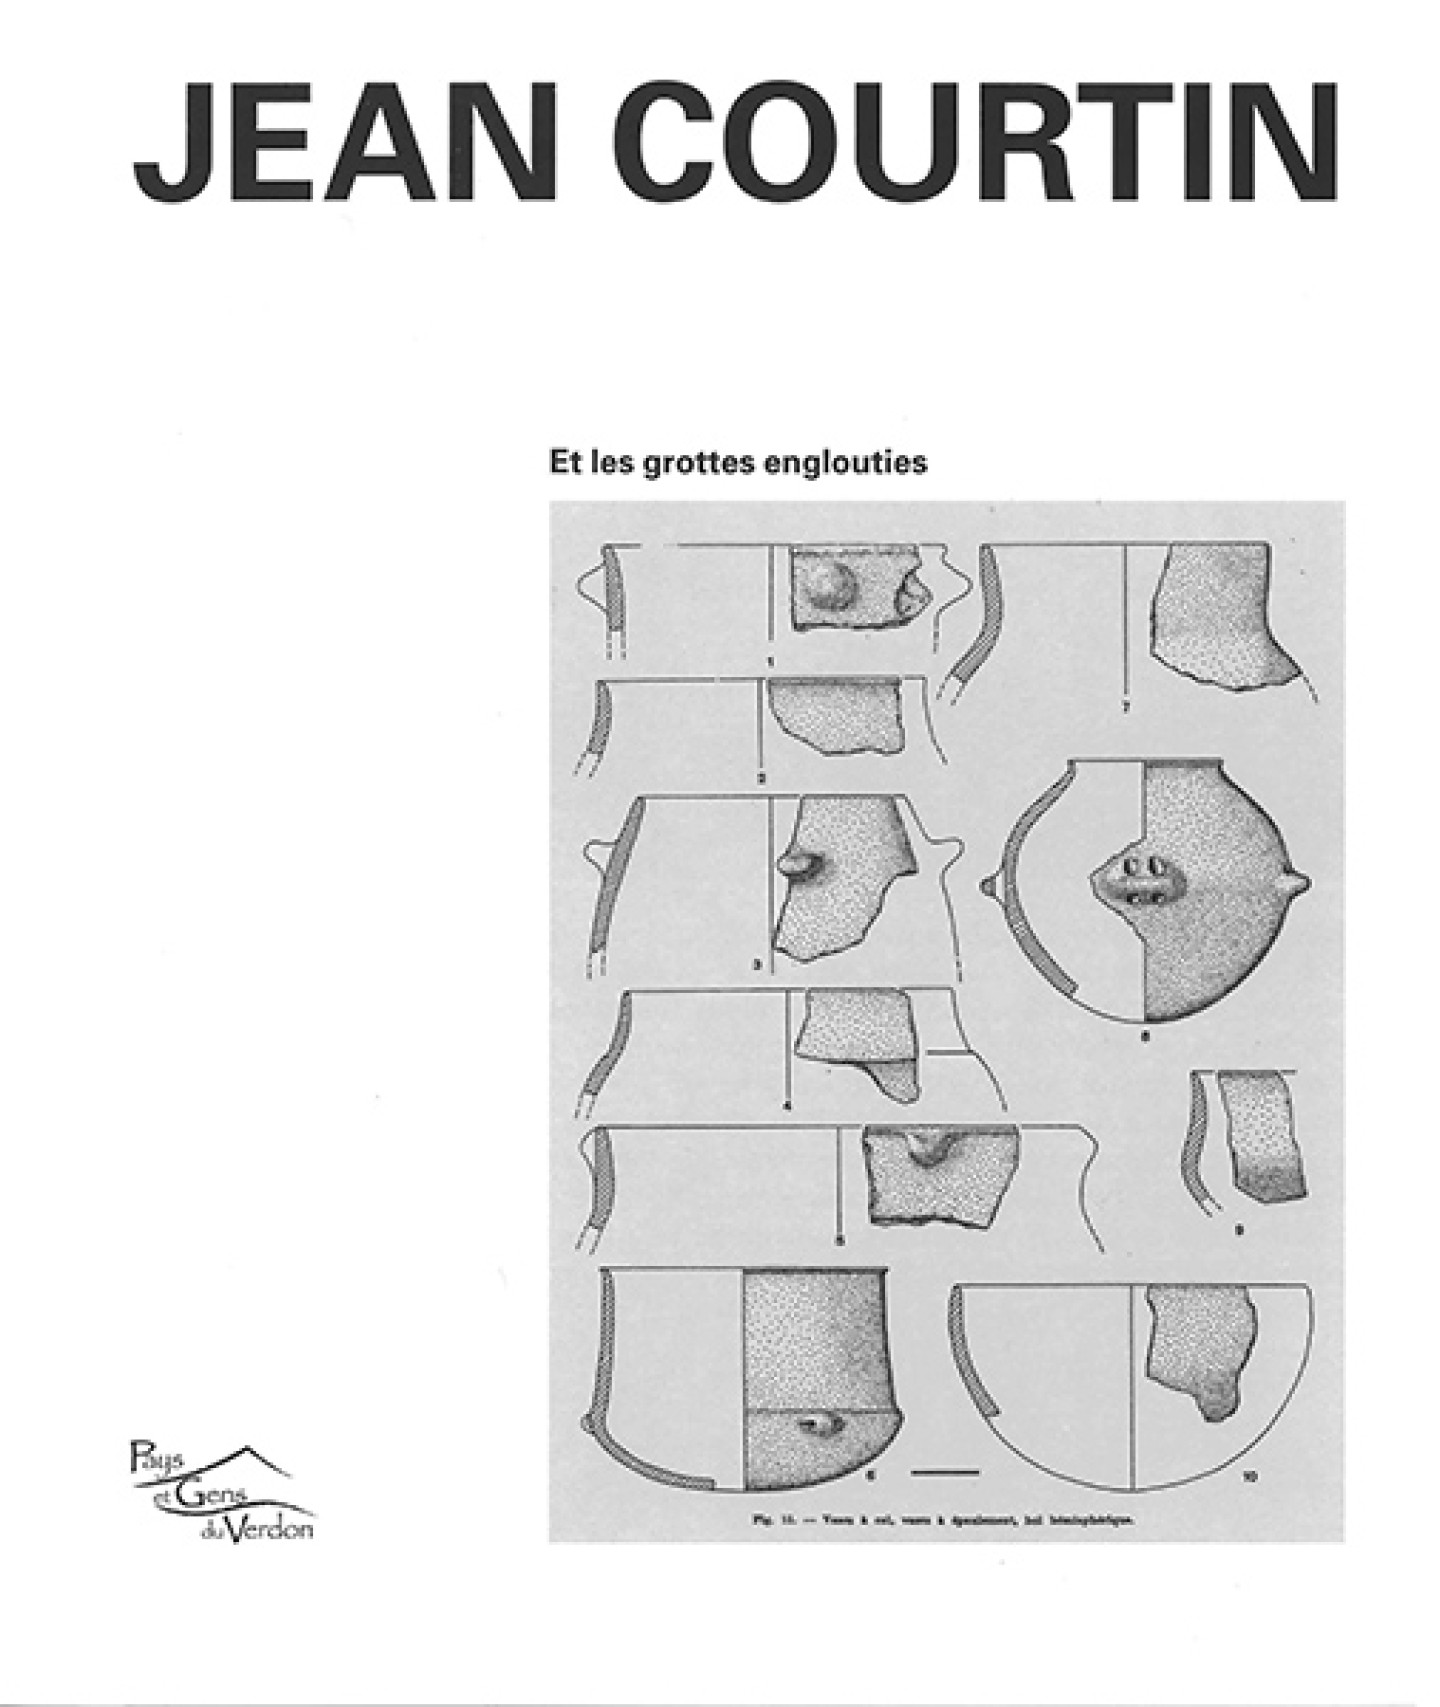 Jean Courtin et les grottes englouties